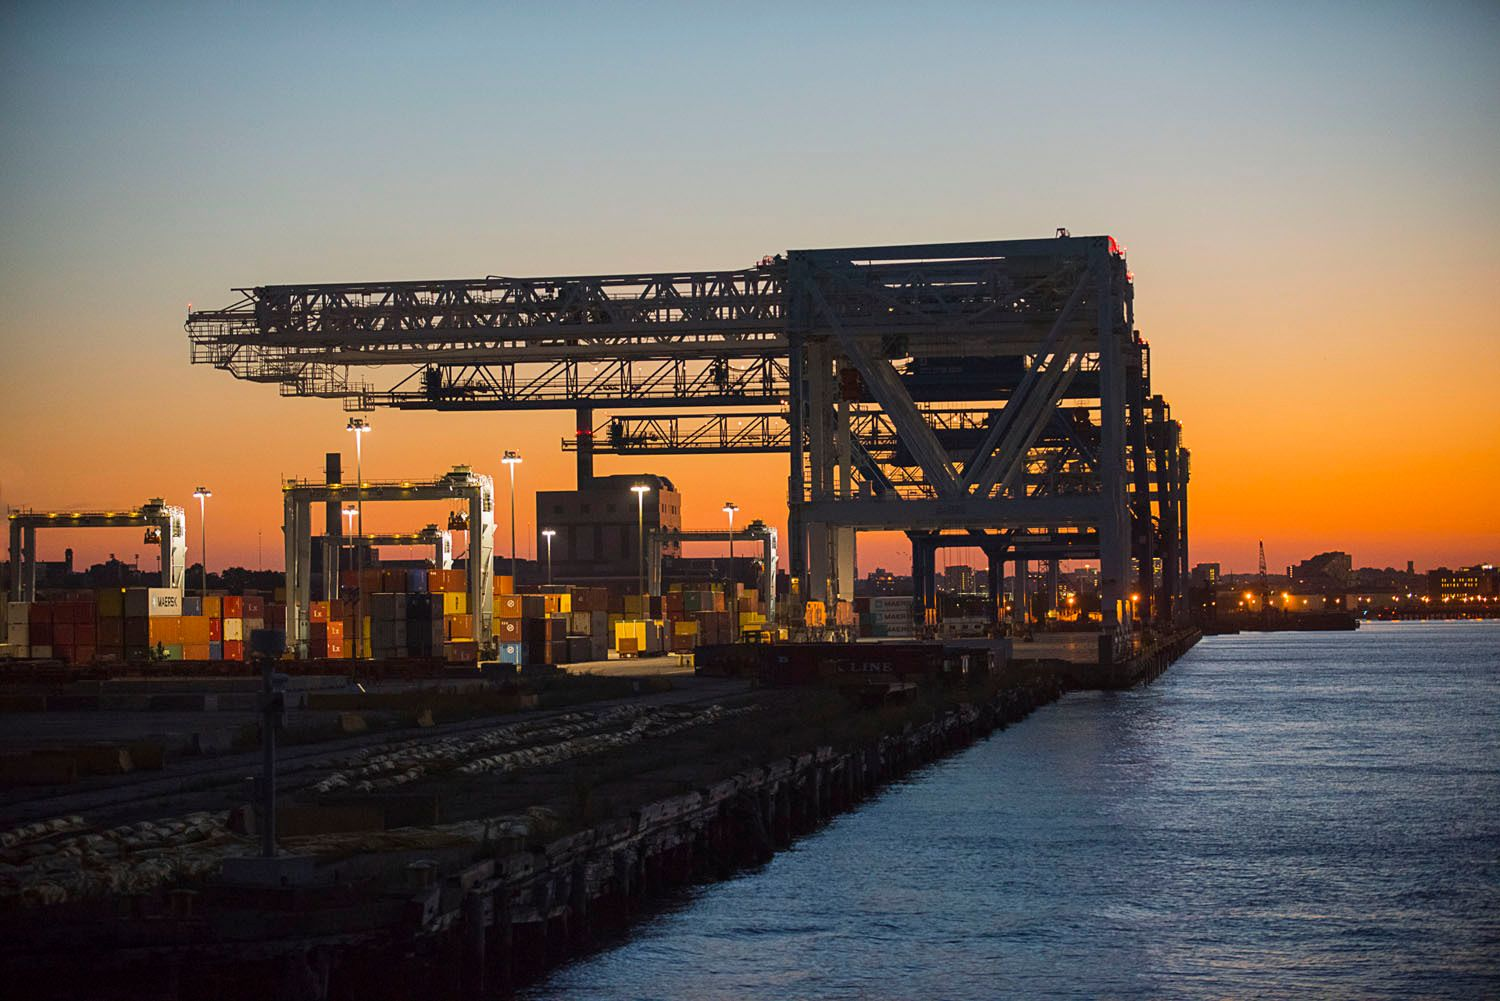 Conley Container Terminal, Boston, MA